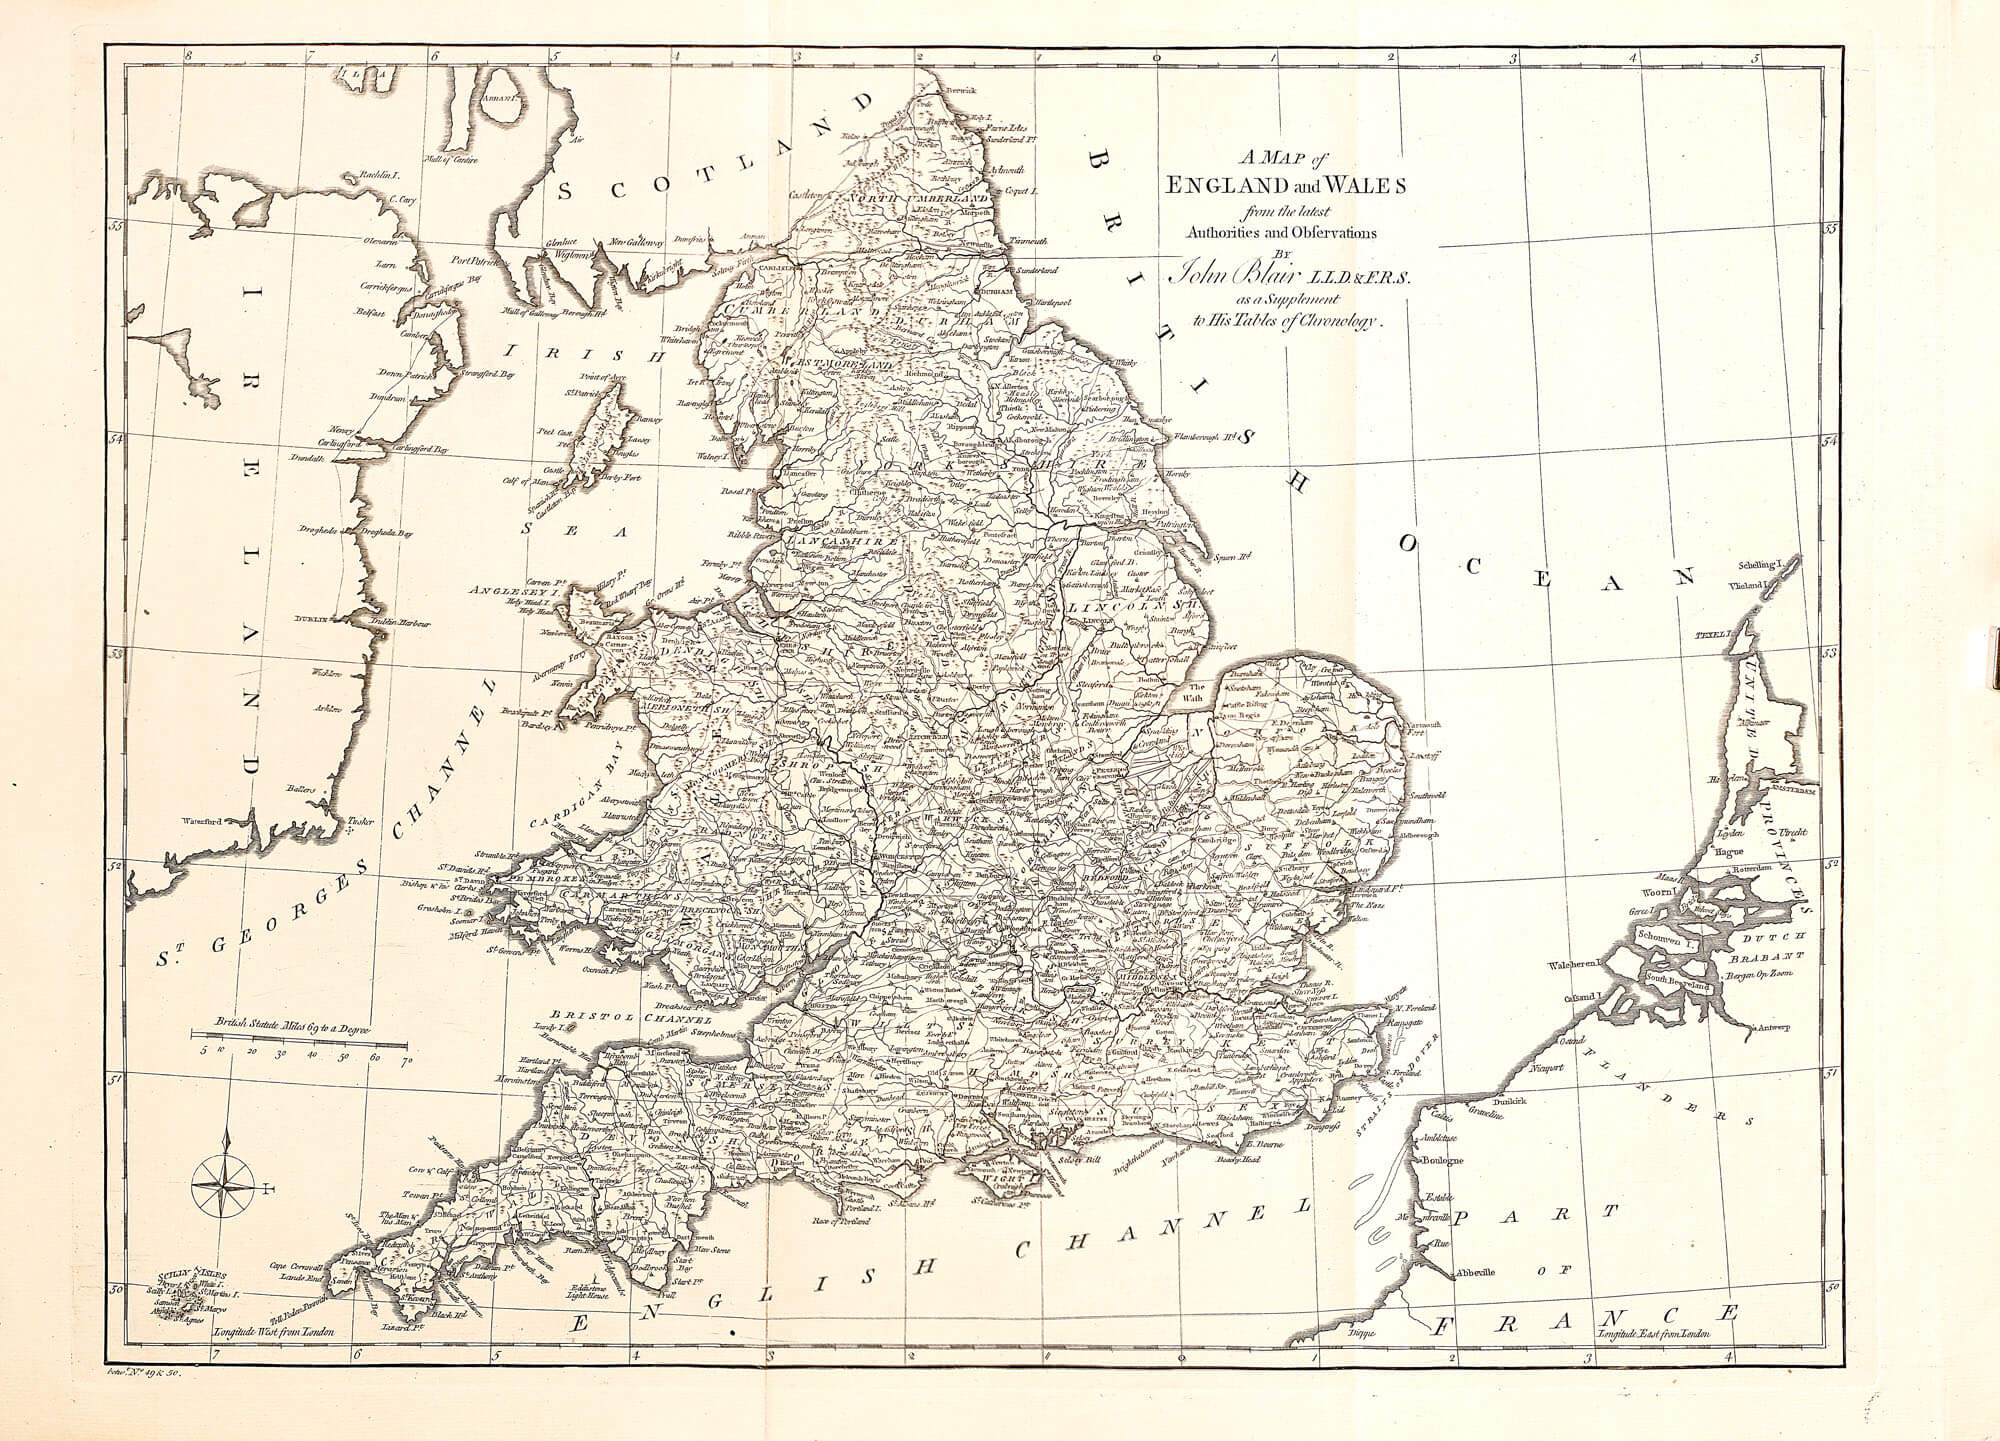 World atlas john blair 1768 l brown collection a 113 10 england wales gumiabroncs Image collections